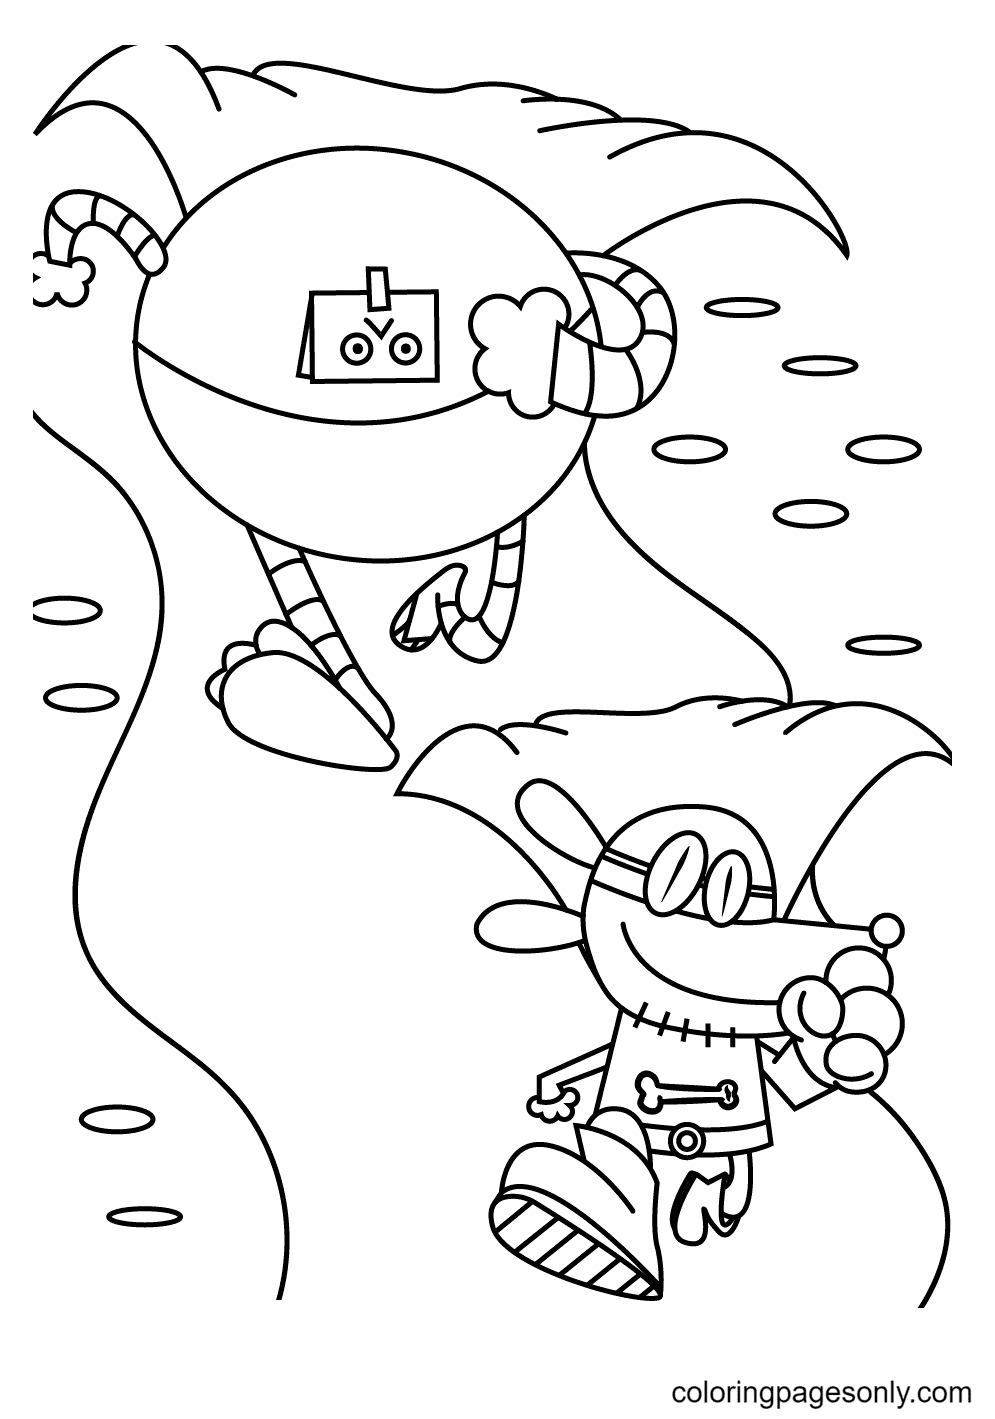 Dog Man Running Away From a Giant Robot Coloring Page